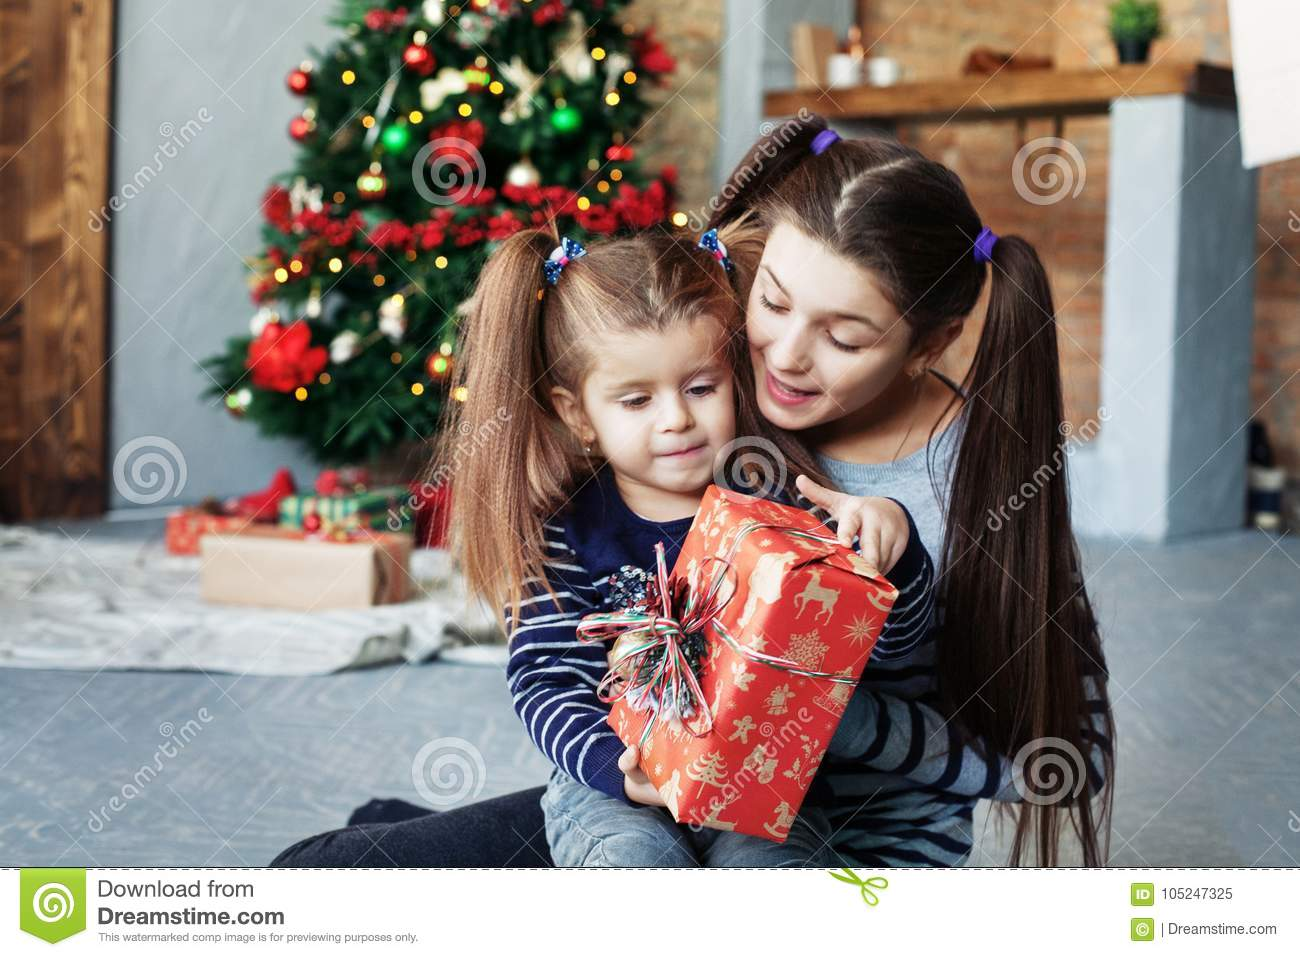 download happy little sister unpack gifts for christmas the concept of c stock image